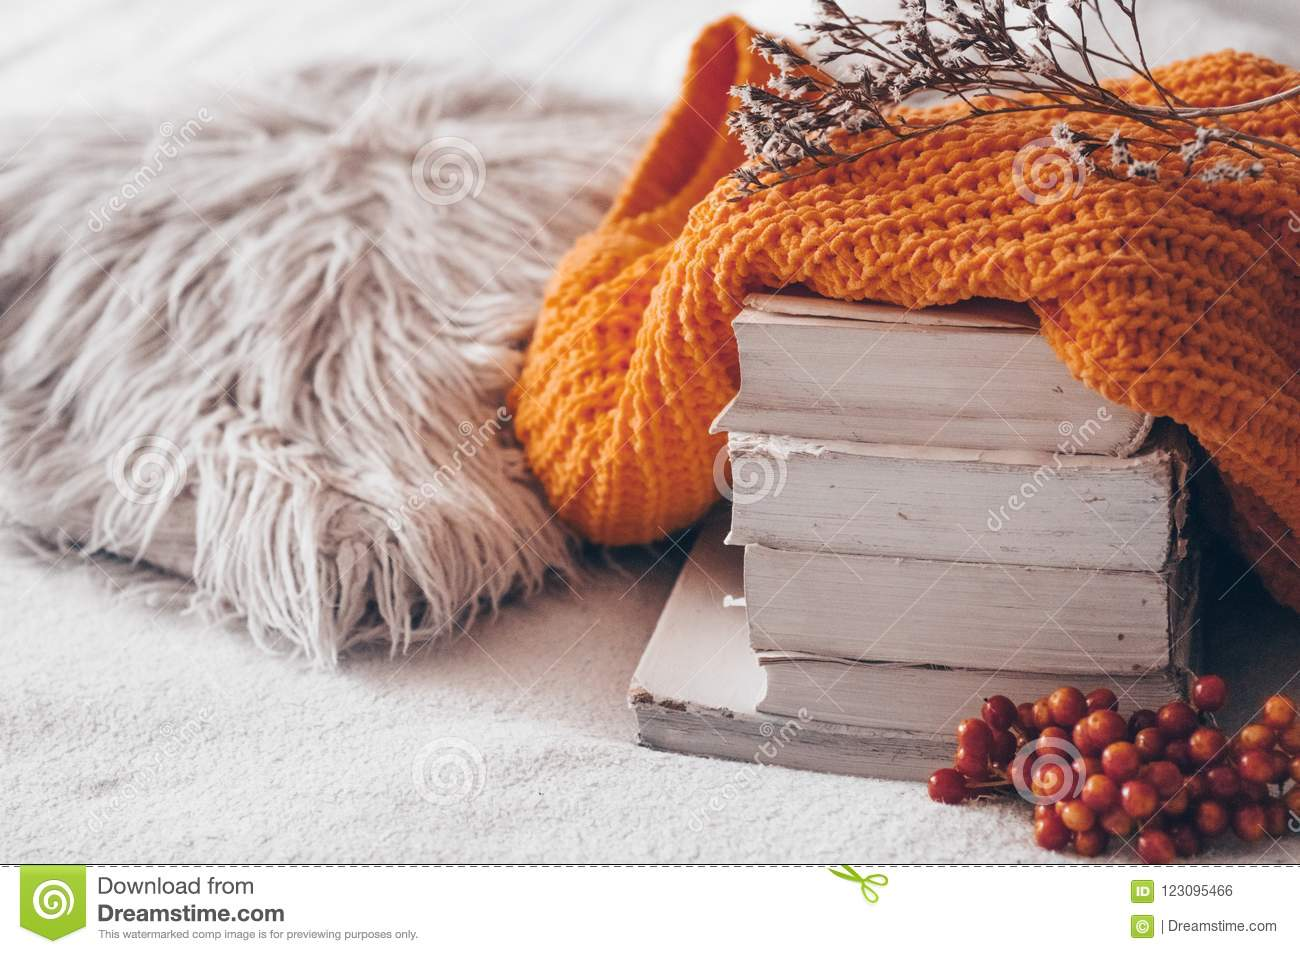 Stack of books and cozy knitted sweaters on warm background and with viburnum and herbarium. Autumn-winter concept